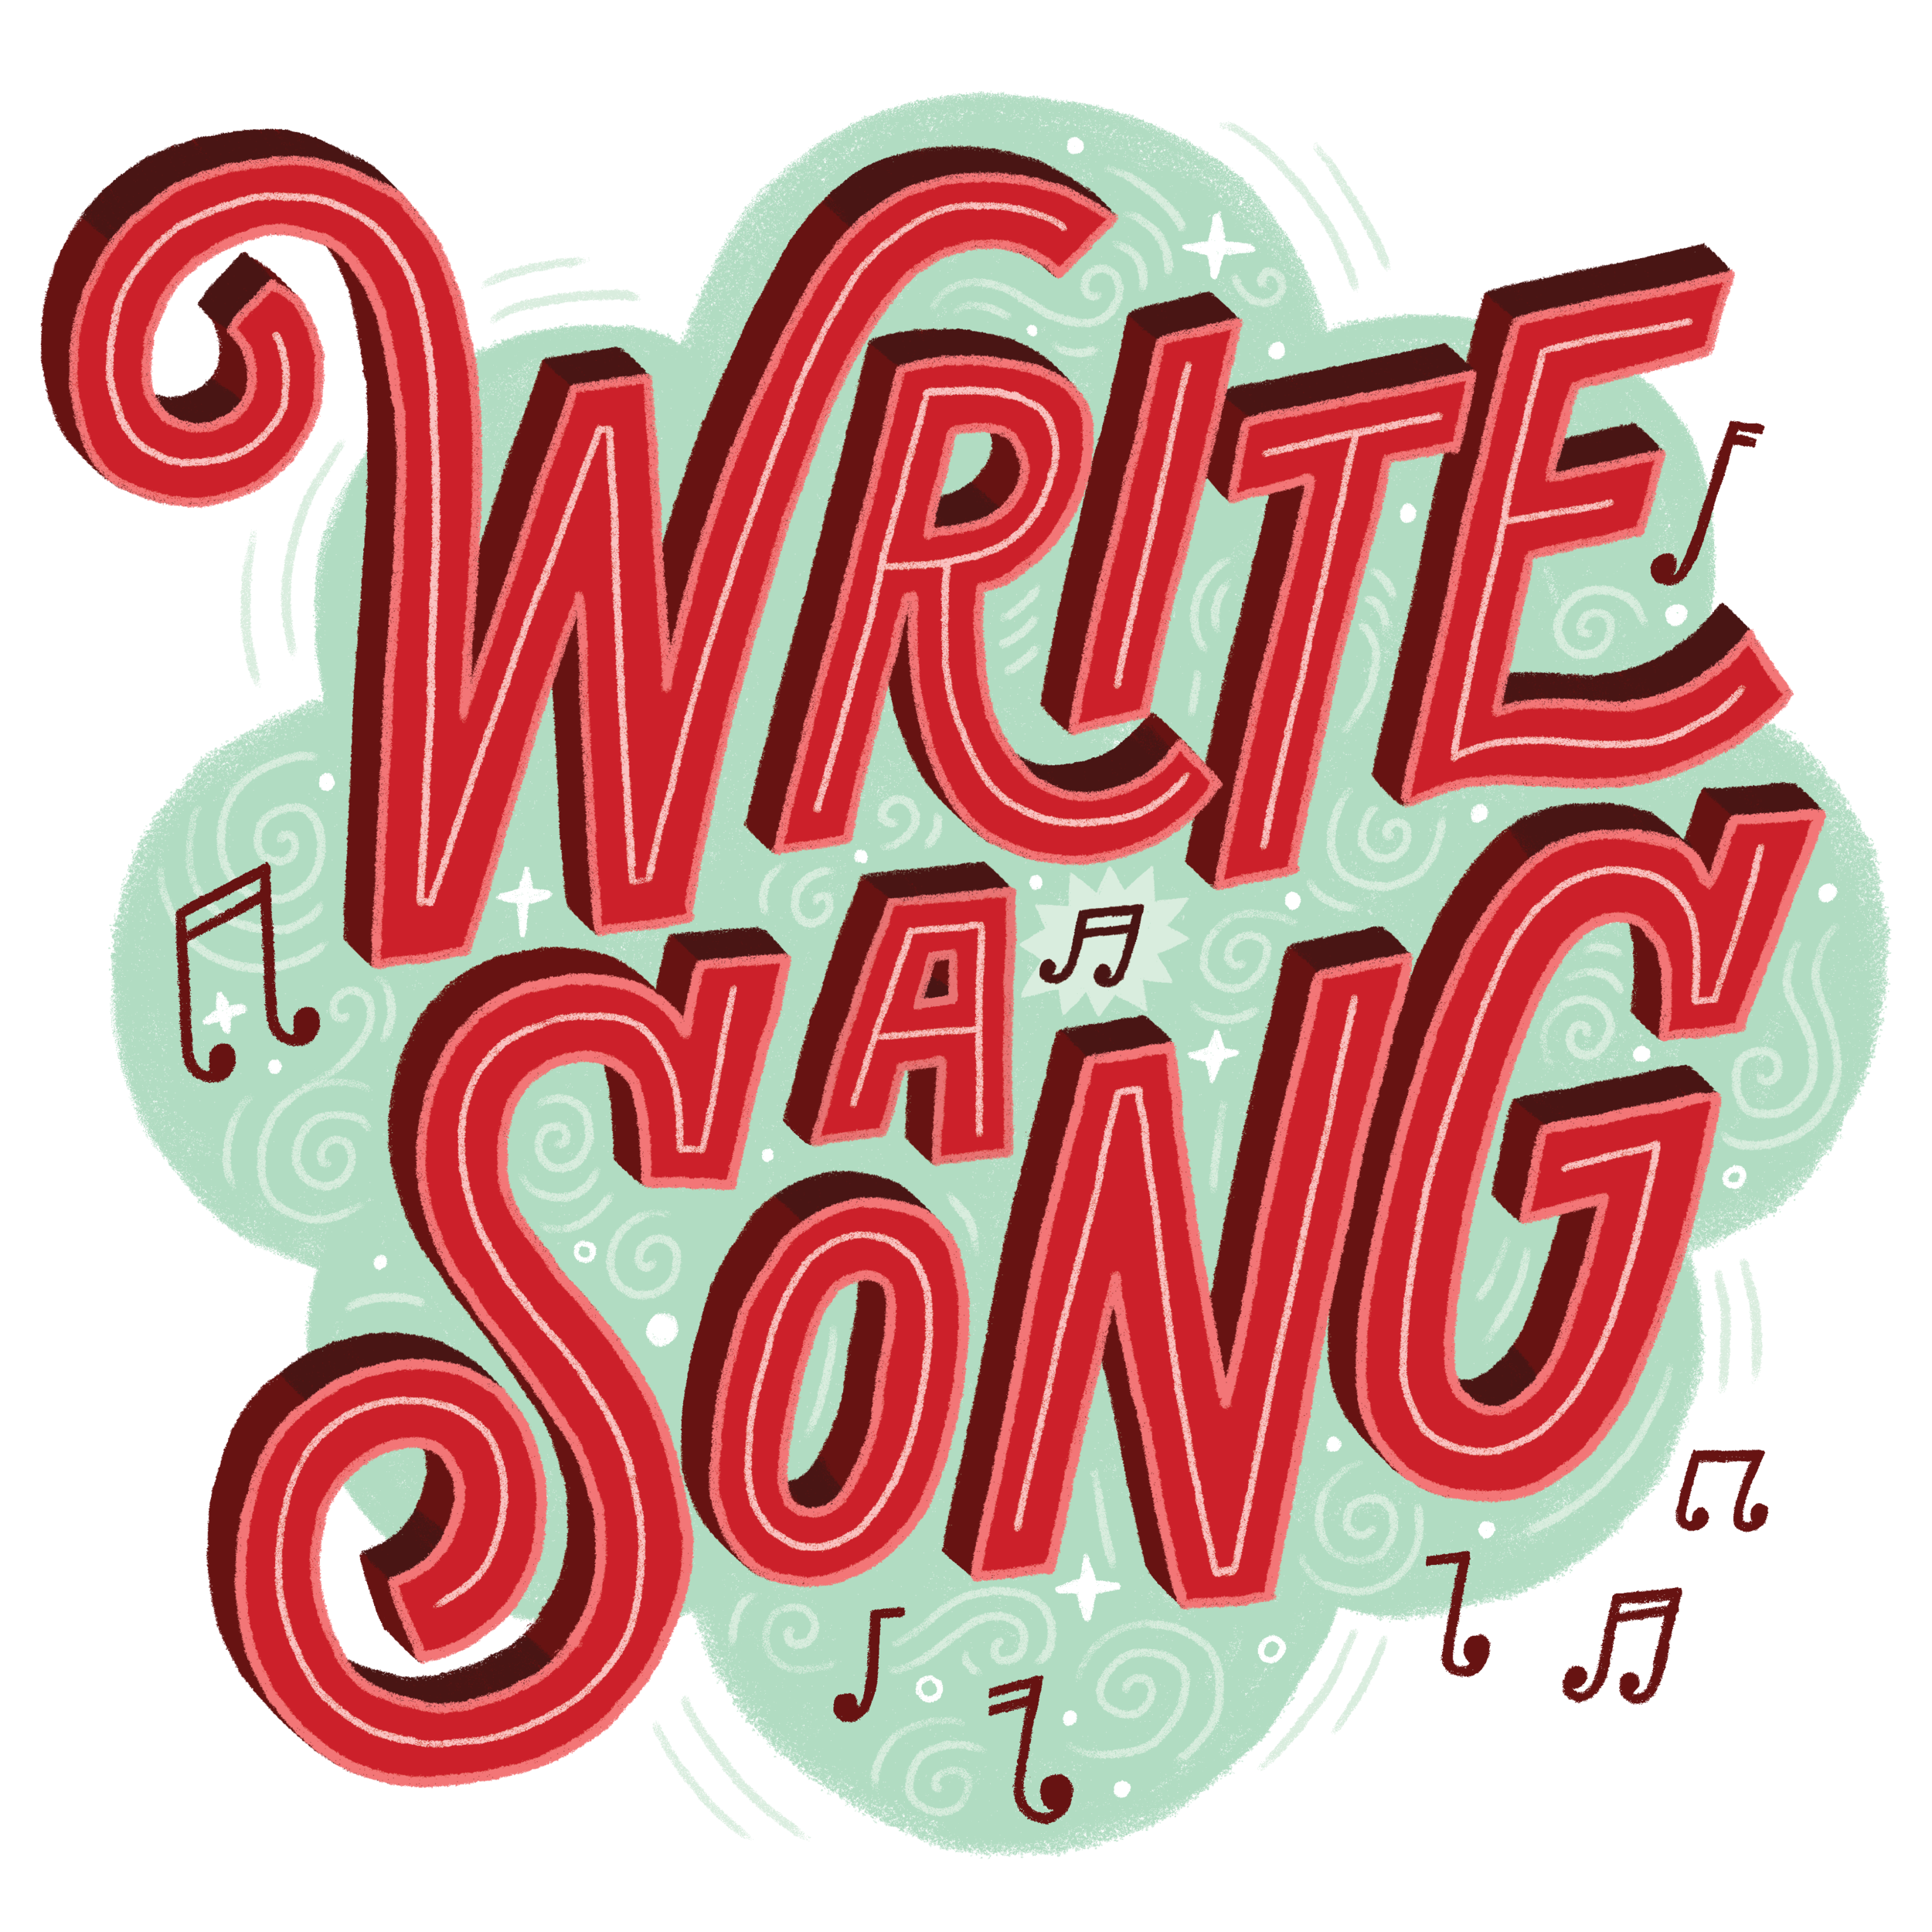 write-a-song-final_01.png